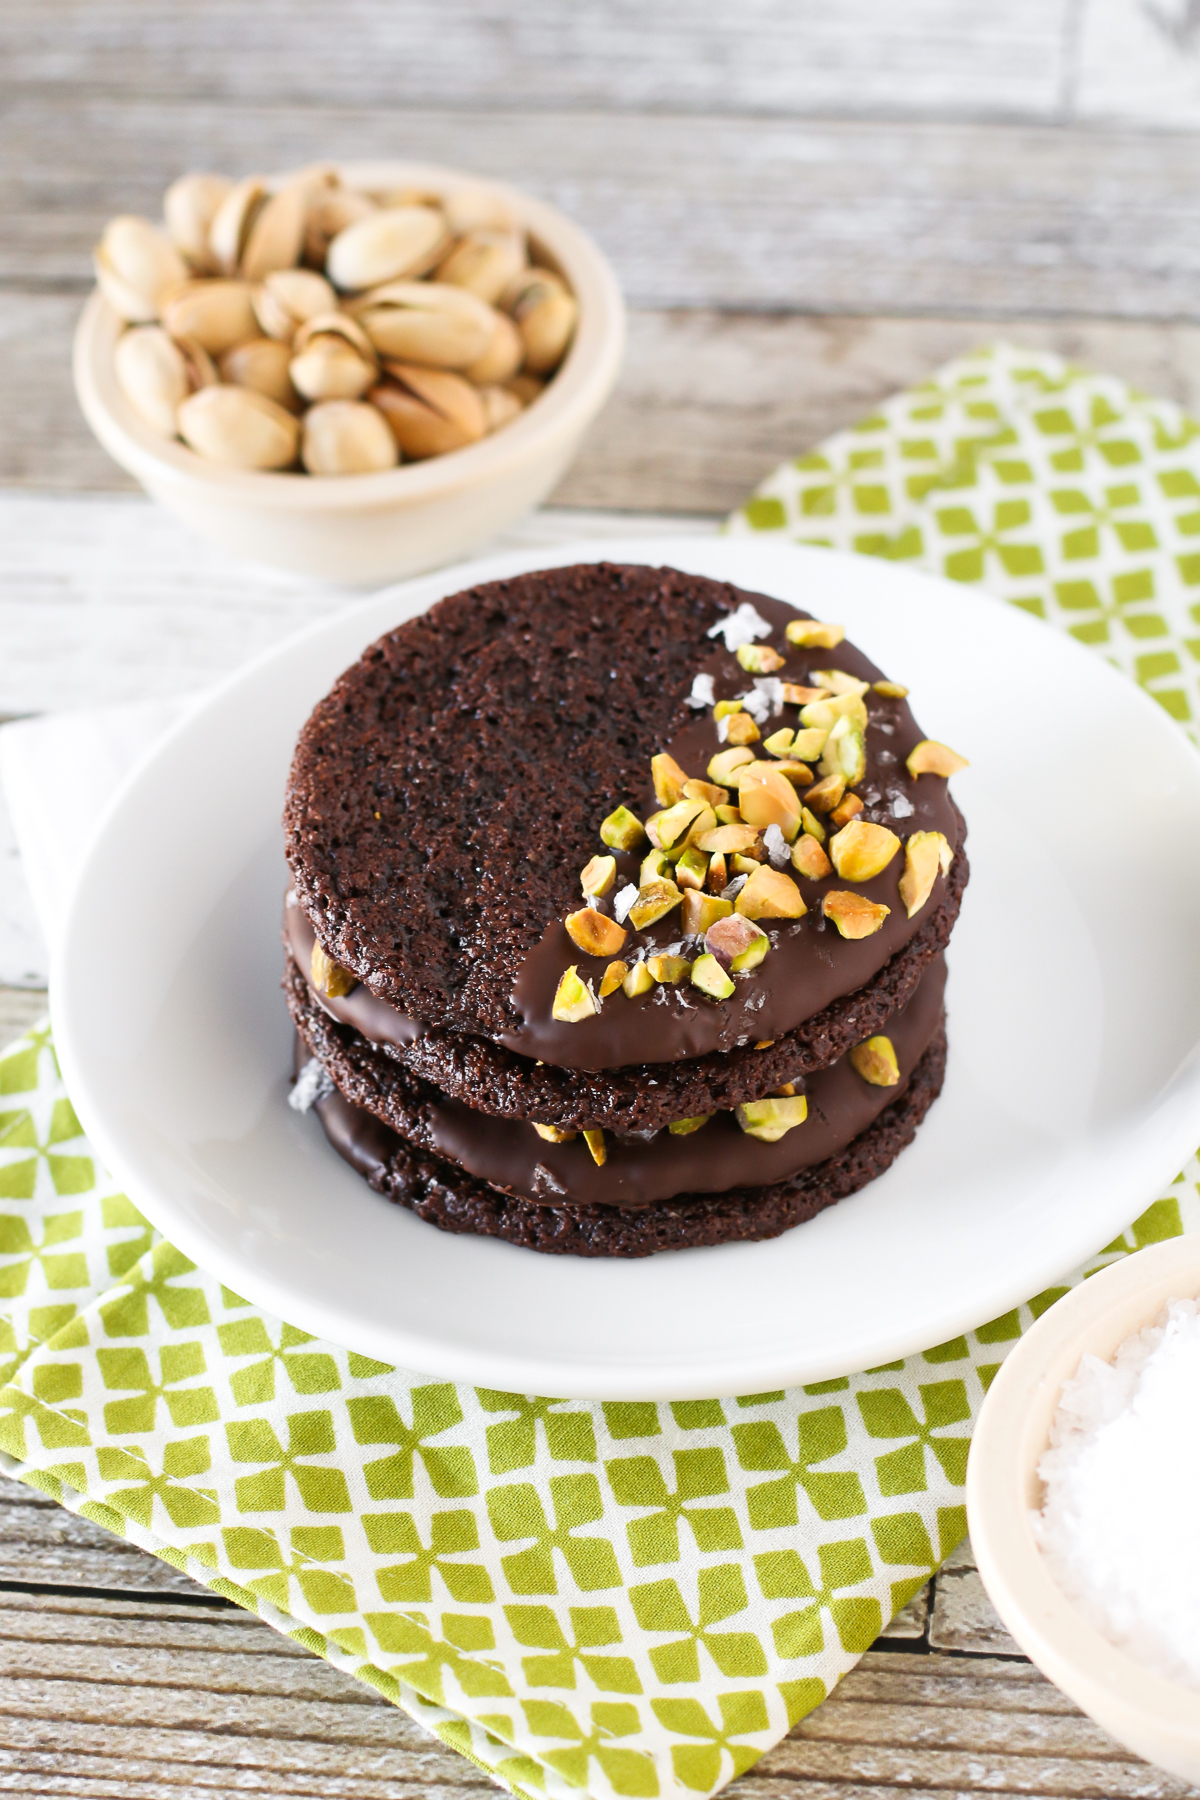 Grain Free Vegan Sea Salt Pistachio Chocolate Cookies. Chewy chocolate almond cookies, dipped in chocolate and sprinkled with chopped pistachios and sea salt.